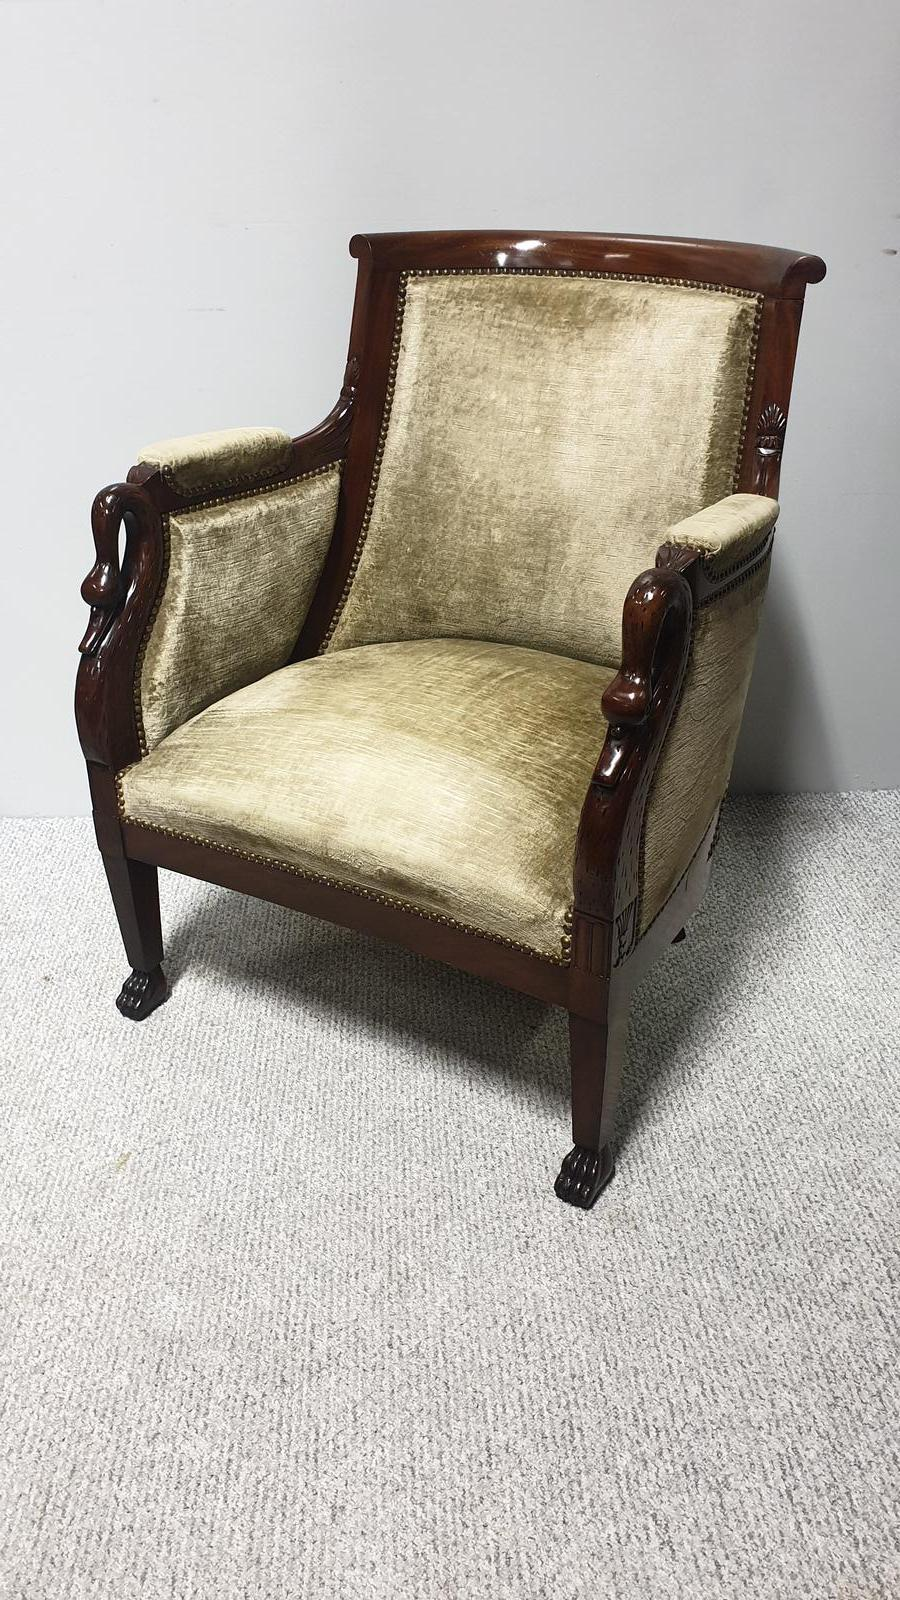 Fabulous French Mahogany Library Chair (1 of 1)